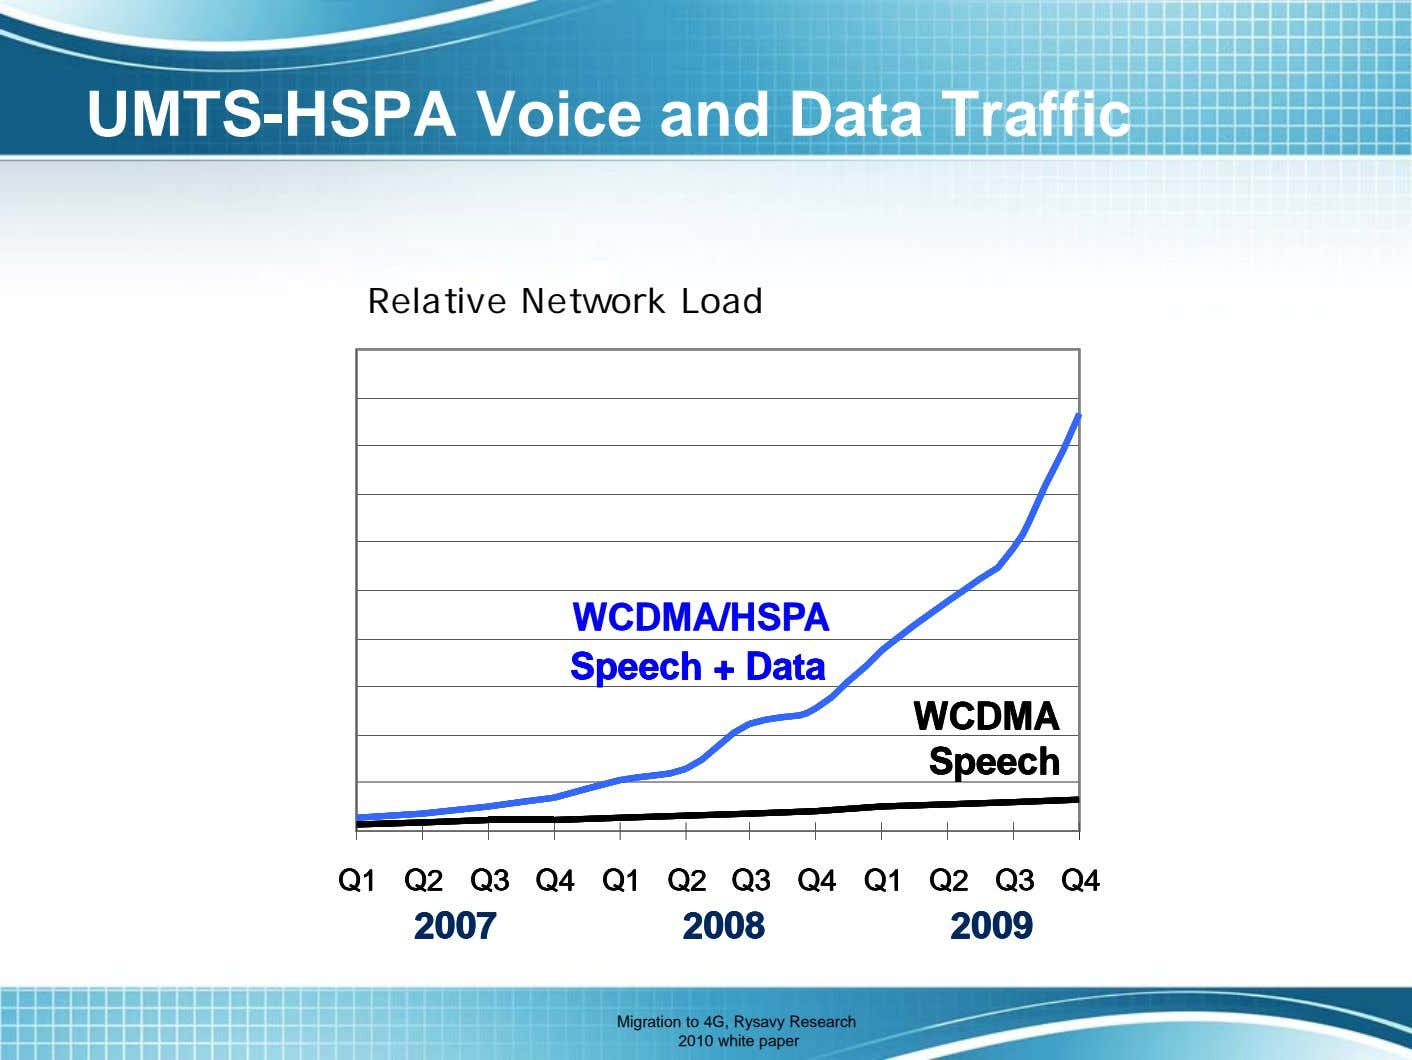 UMTS-HSPA Voice and Data Traffic Relative Network Load WCDMA/HSPA WCDMA/HSPA Speech + Data Speech +